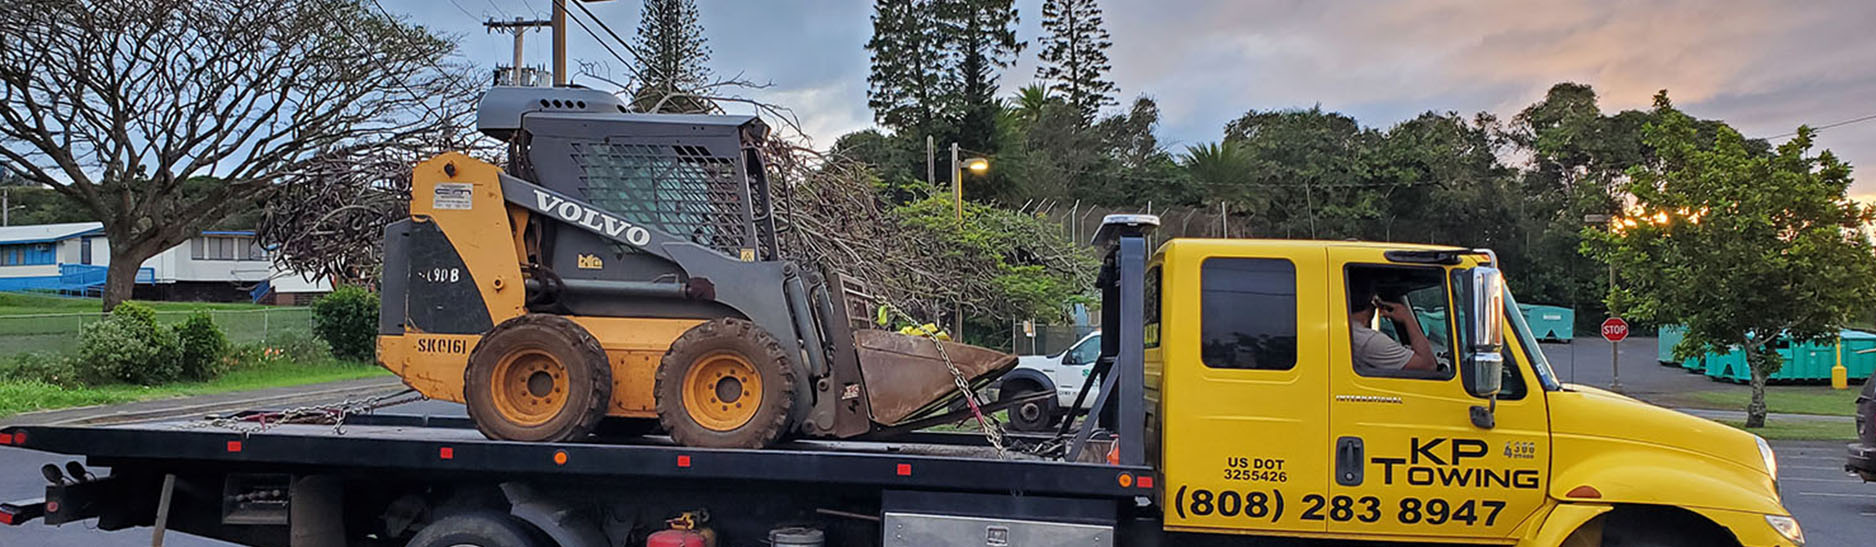 Kahului Tow Truck Service, Towing Company and 24 Hour Towing